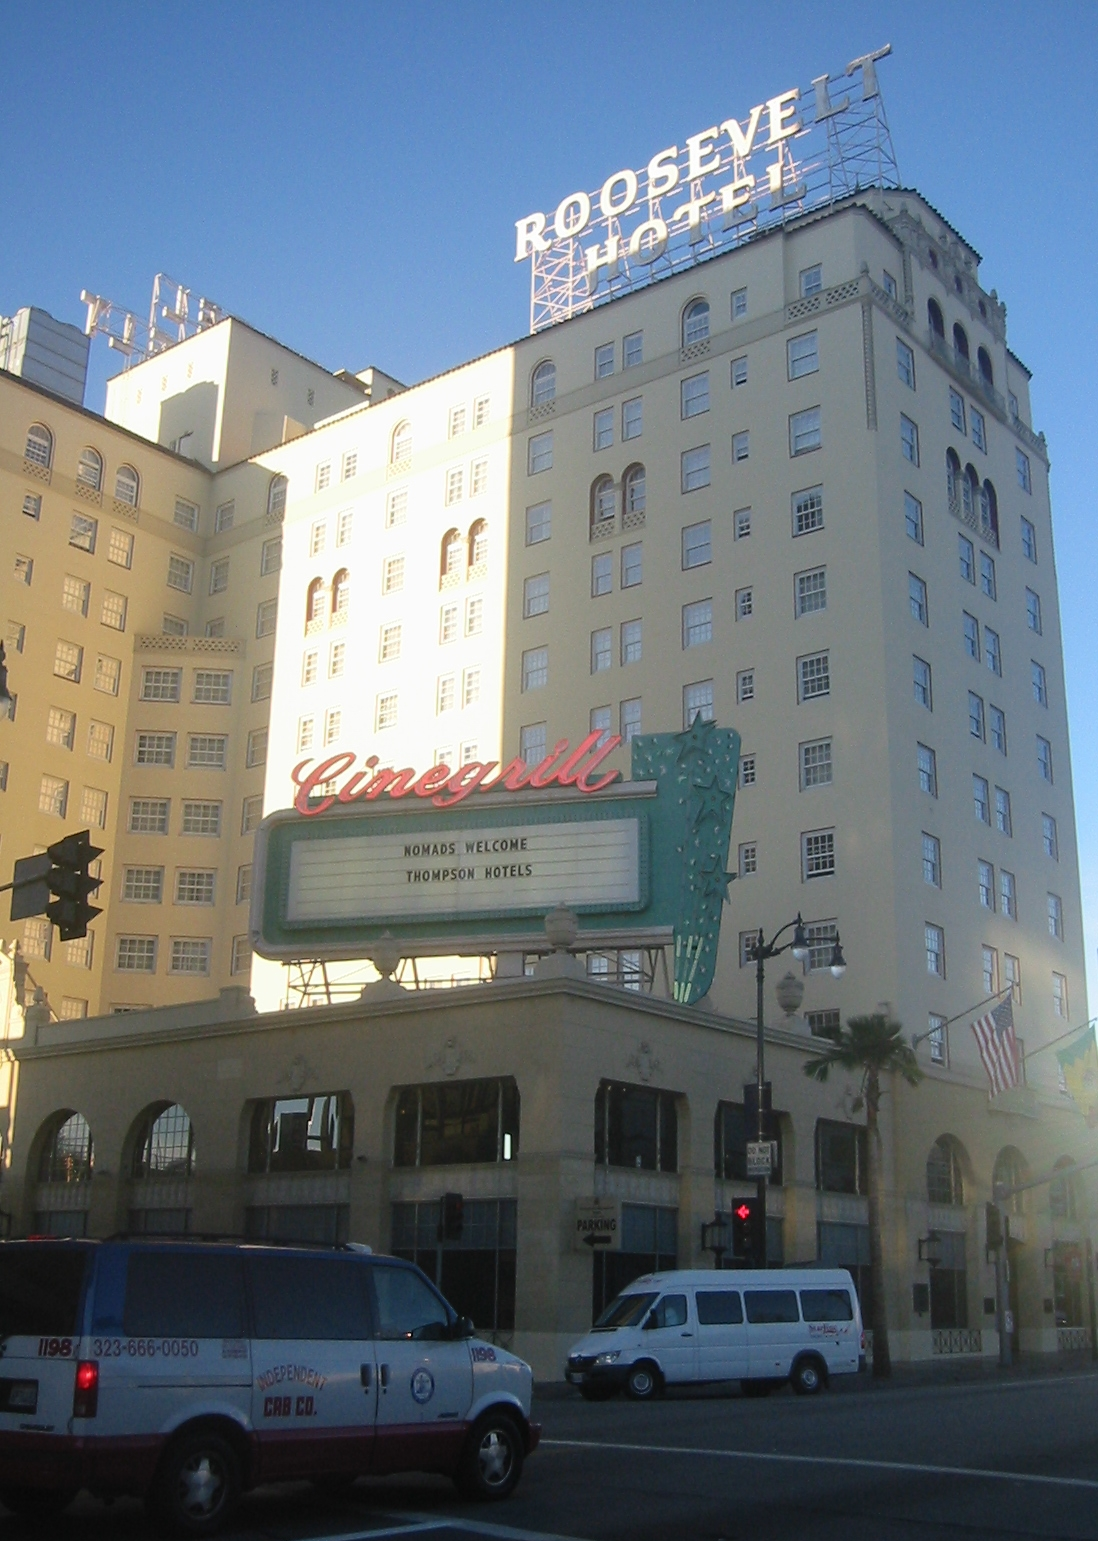 Roosevelt Hotel Los Angeles Haunted